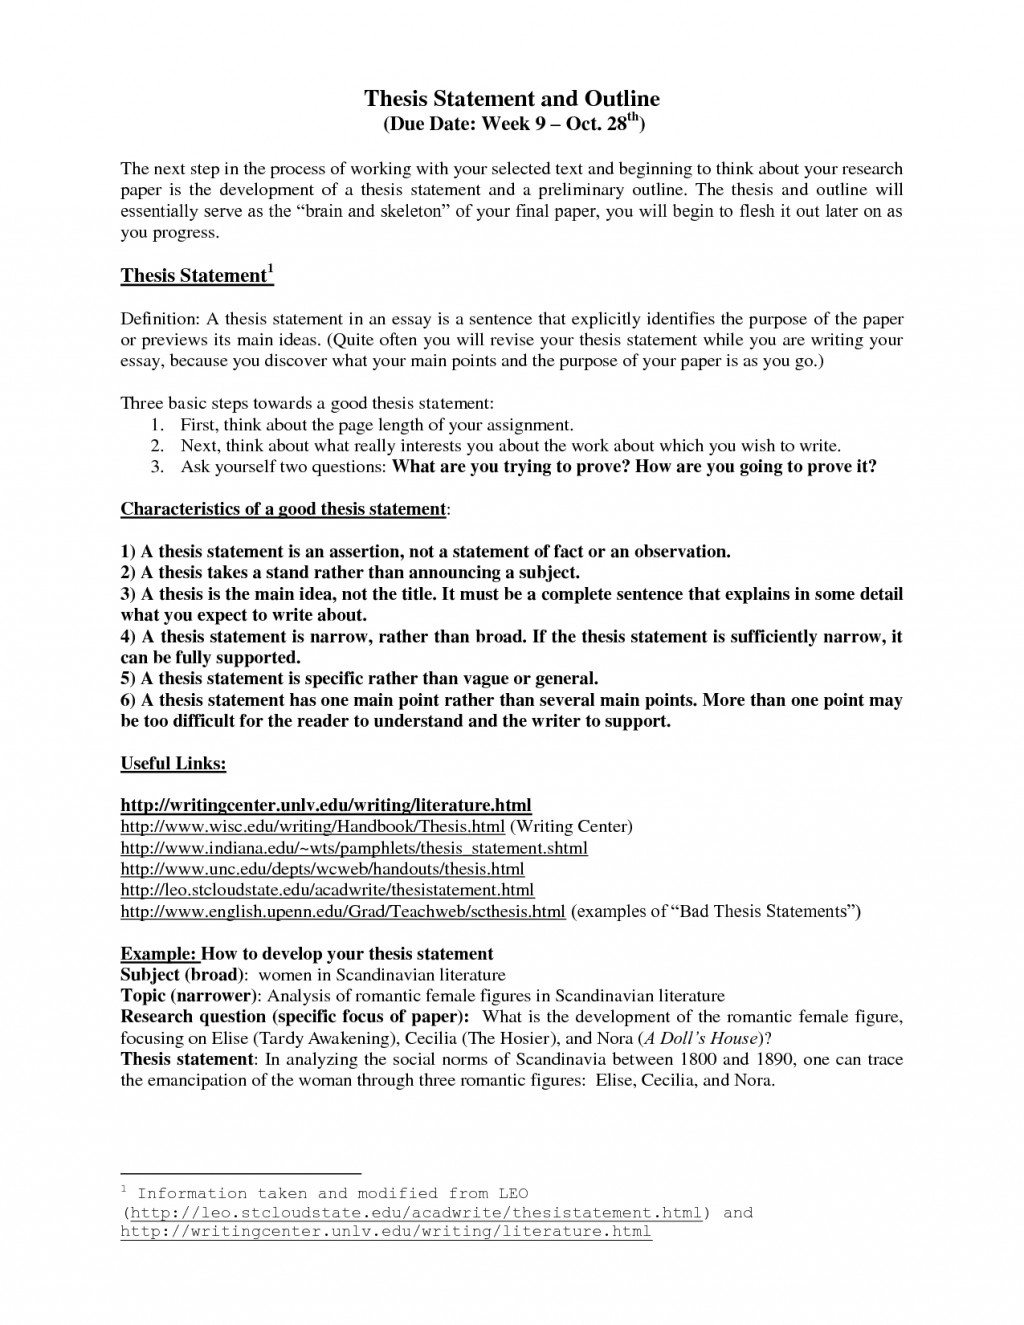 001 Thesis Statement And Outline Template Wx8nmdez Research Paper How To Write For Staggering A Examples Large